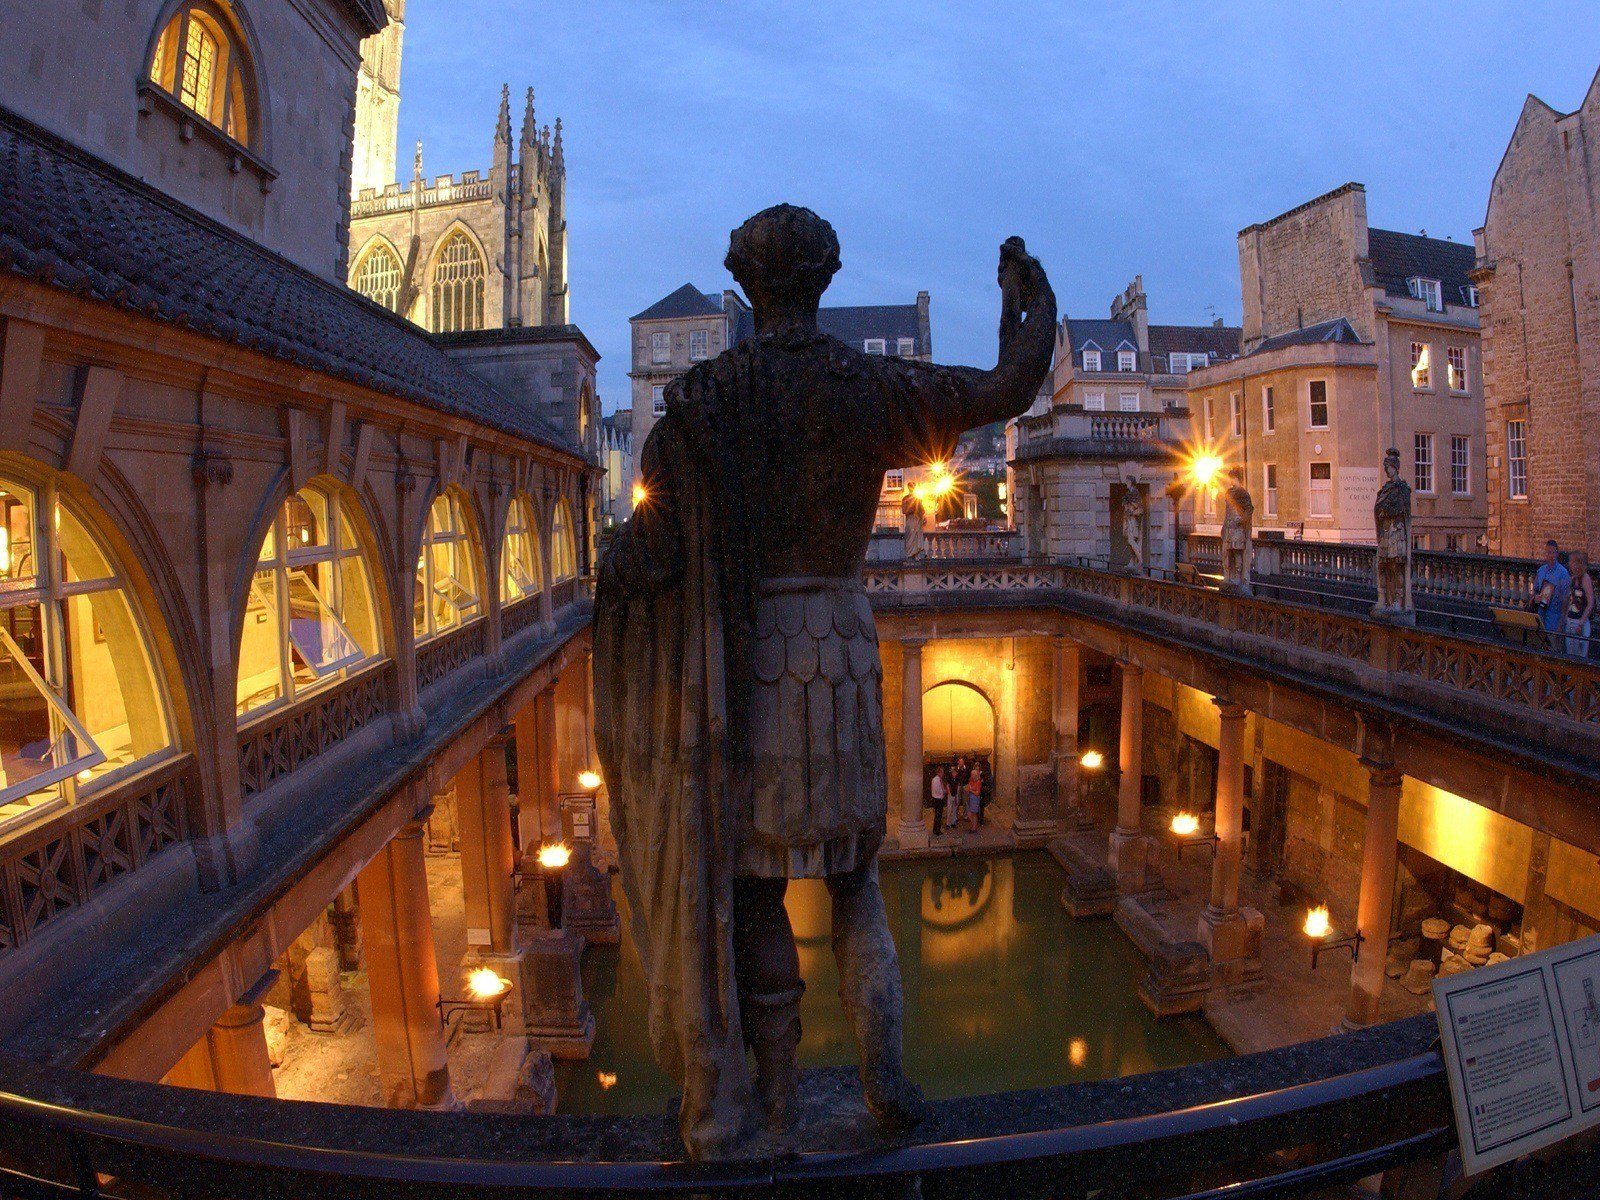 Hire The Unique Roman Baths For Weddings And Drinks Receptions